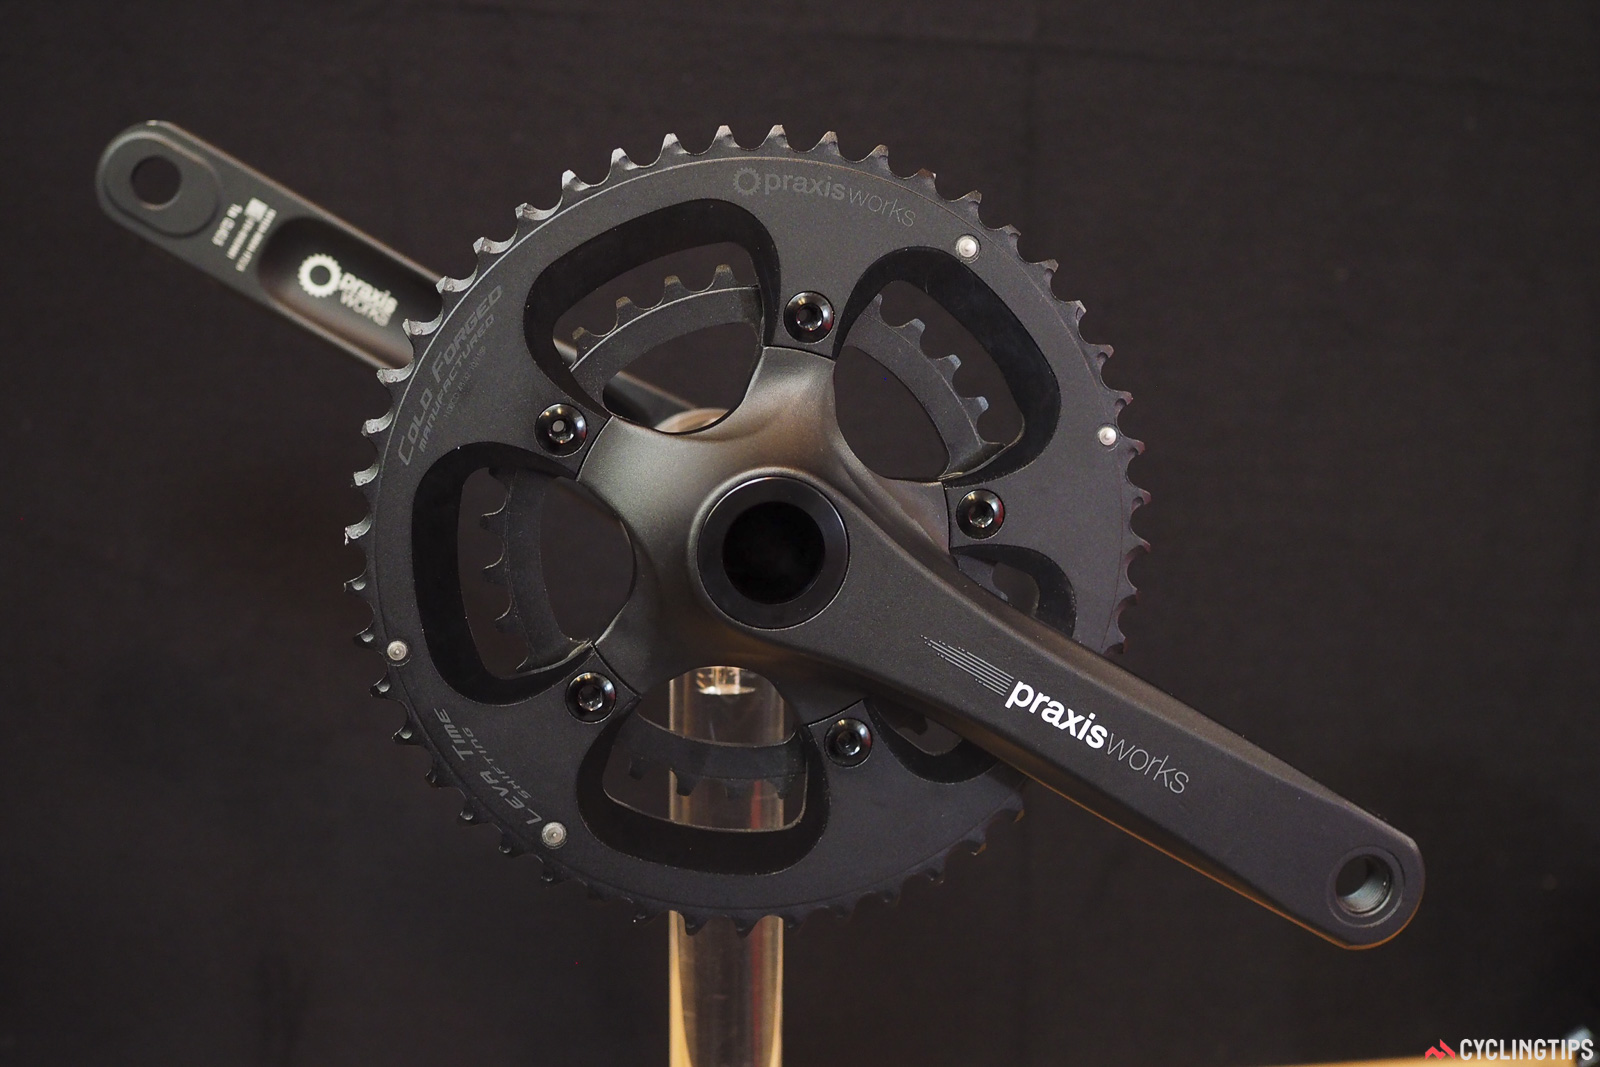 Praxis has subtly modified its Zayante hollow forged aluminum crankarms to accept its new micro-compact 48/32T chainrings. The lower gearing isn't aimed at traditional roadies (although some may certainly benefit), but rather gravel and adventure riders who might be hauling heavier loads or traveling on steeper terrain. Photo: James Huang.